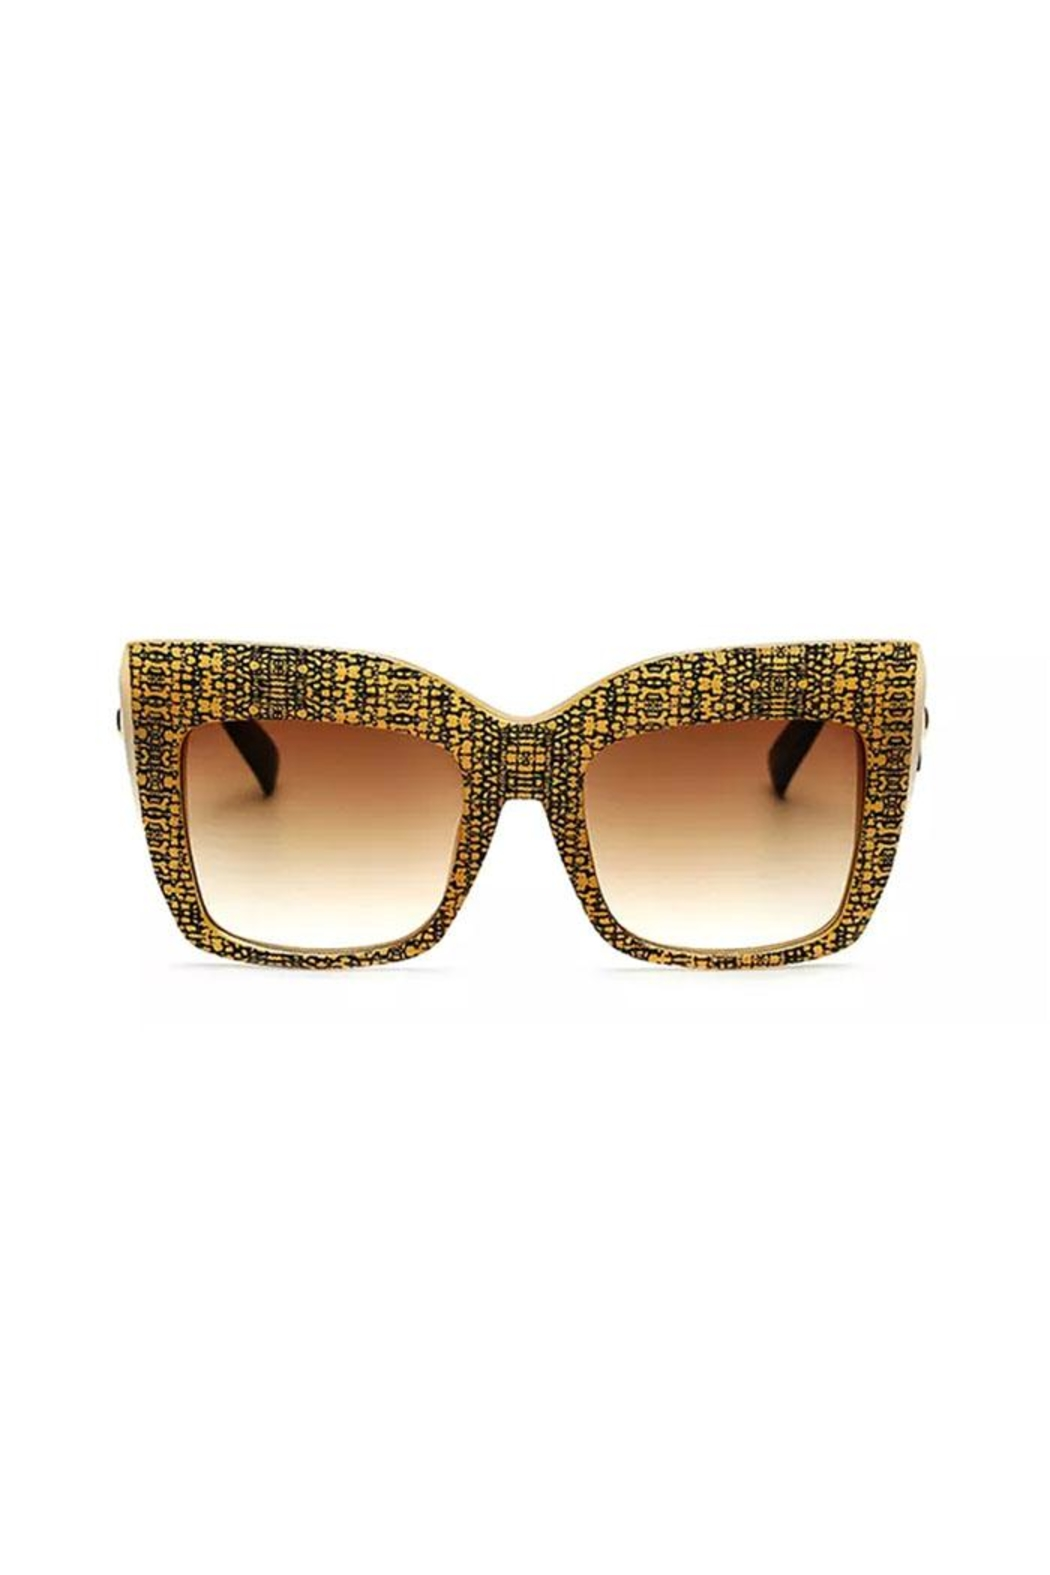 Madison Avenue Accessories Bee Hive Sunnies - Front Cropped Image